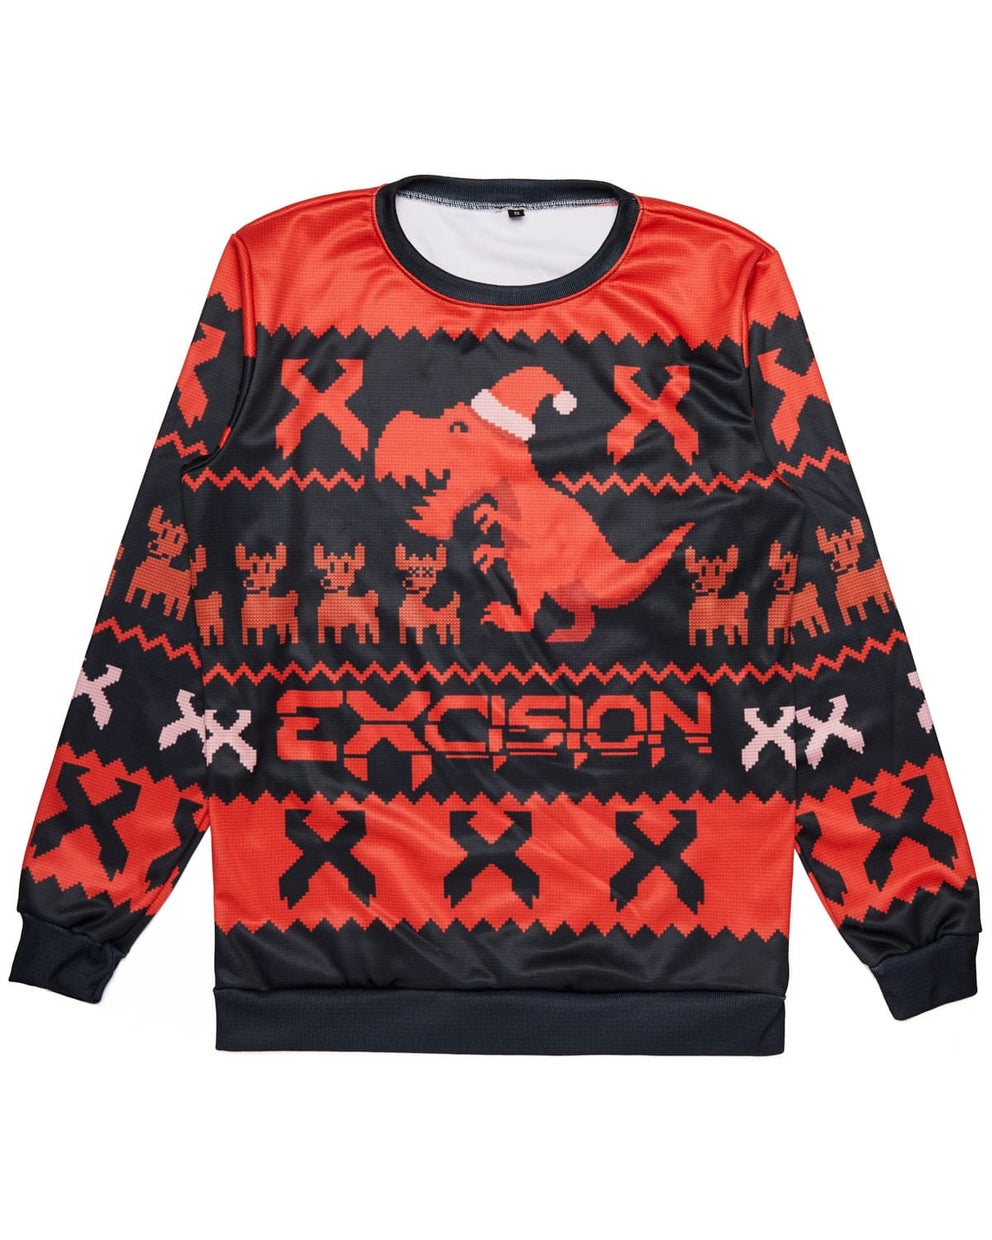 Excision 2019 Ugly Christmas Sweater - Black/Red